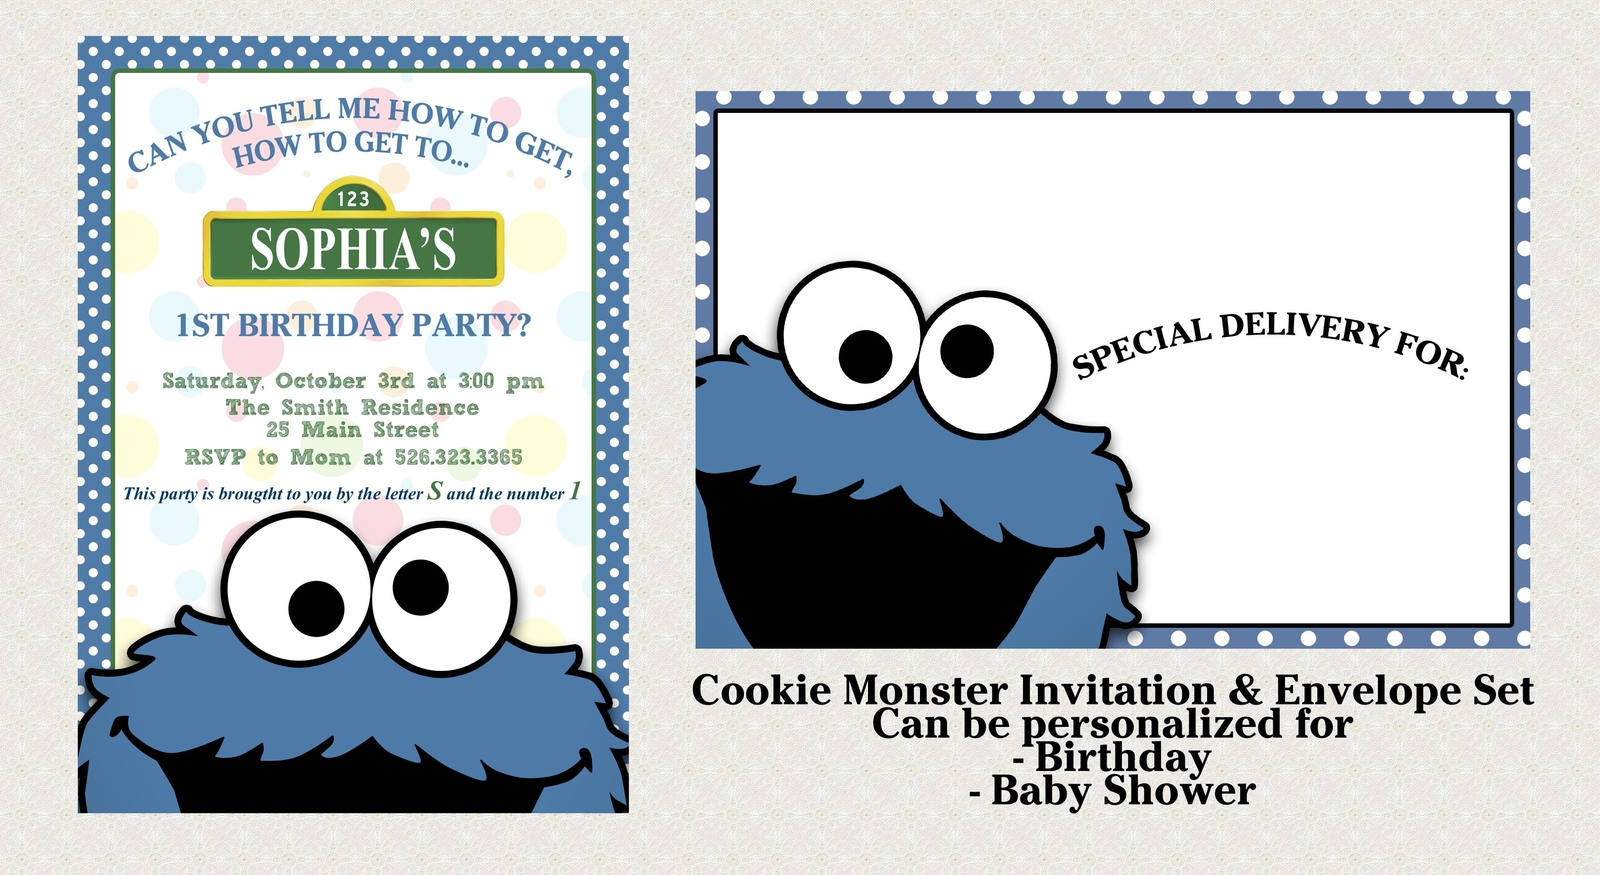 Cookie Monster Invitations was luxury invitations template